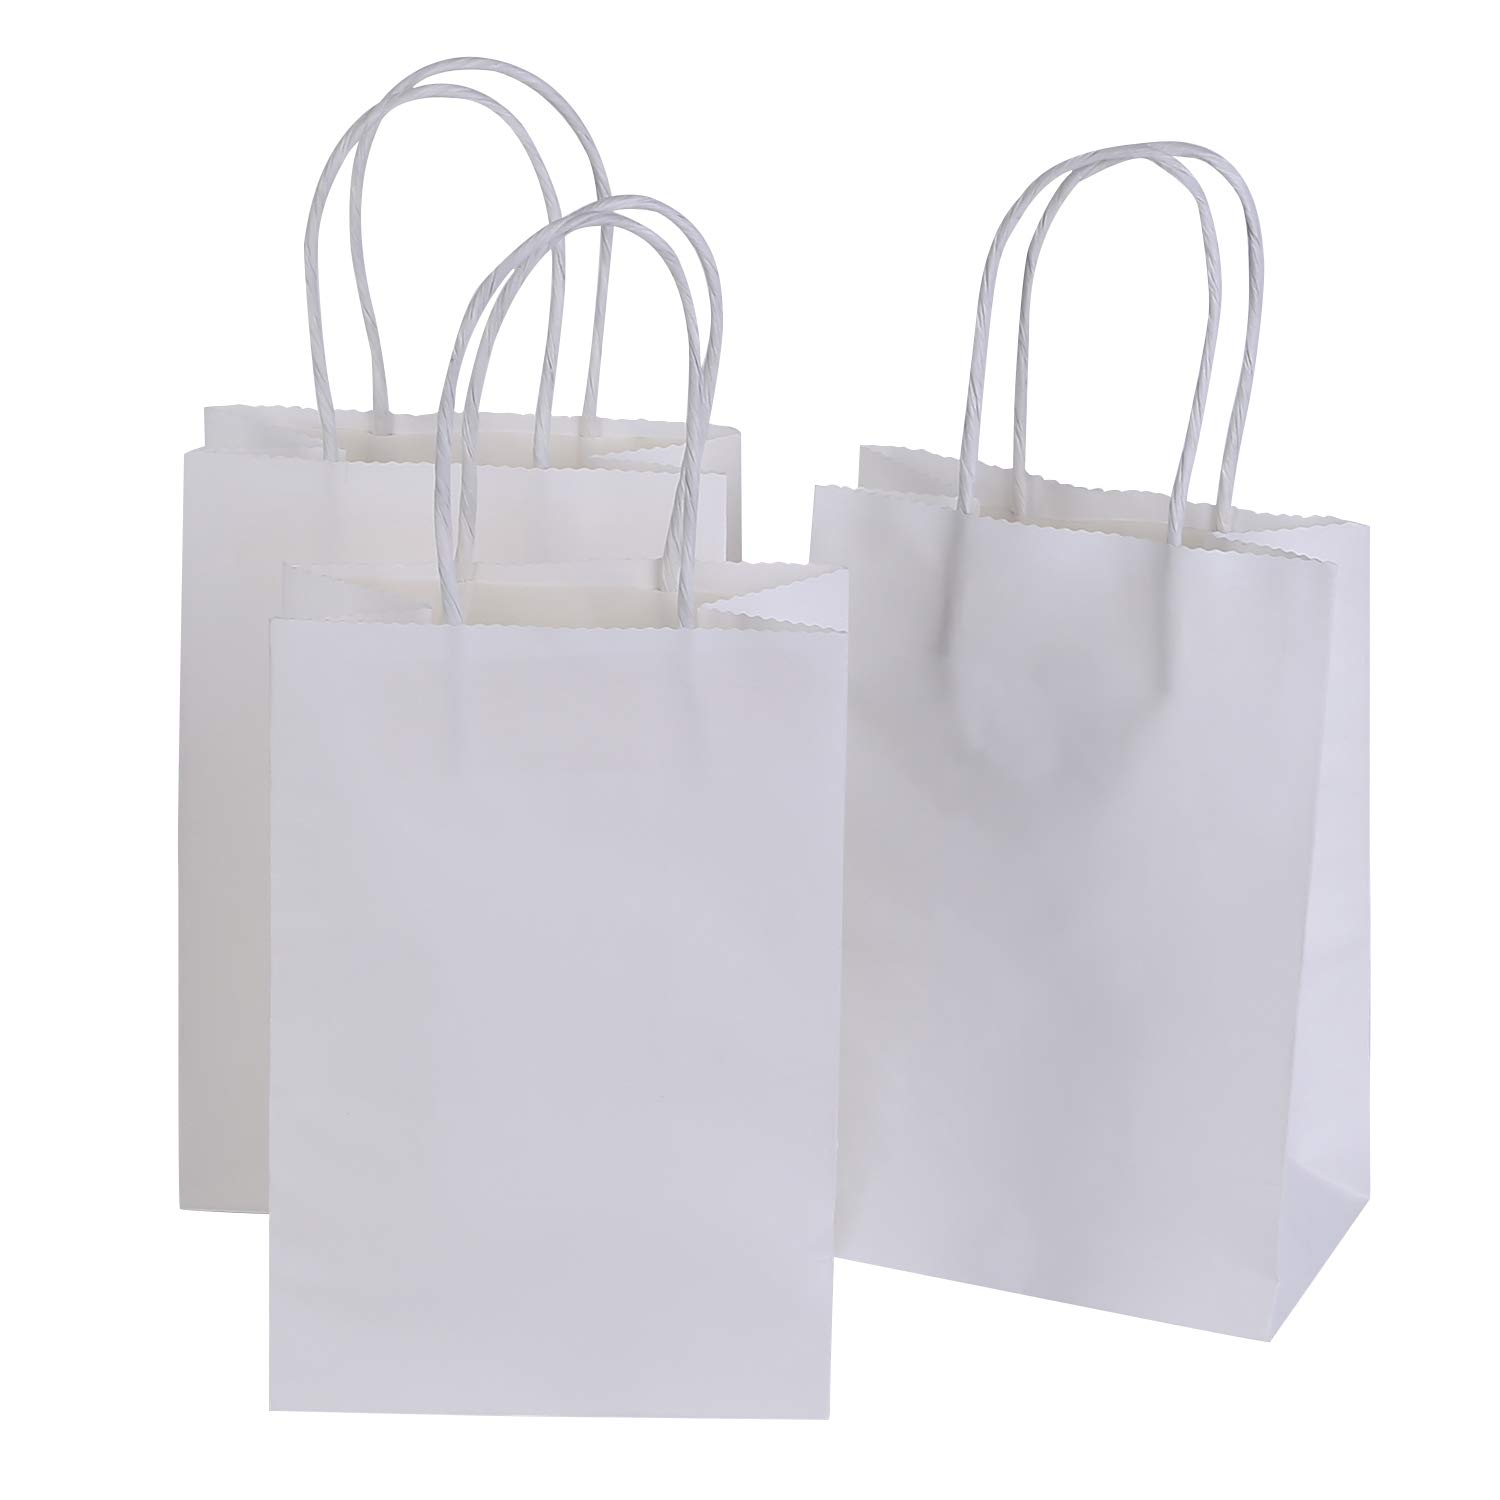 Ronvir 5.25 x 3.75 x 8 Inches Small Kraft White Paper Bags with Handles, Shopping, Grocery, Mechandise, Party Bags (100pc)